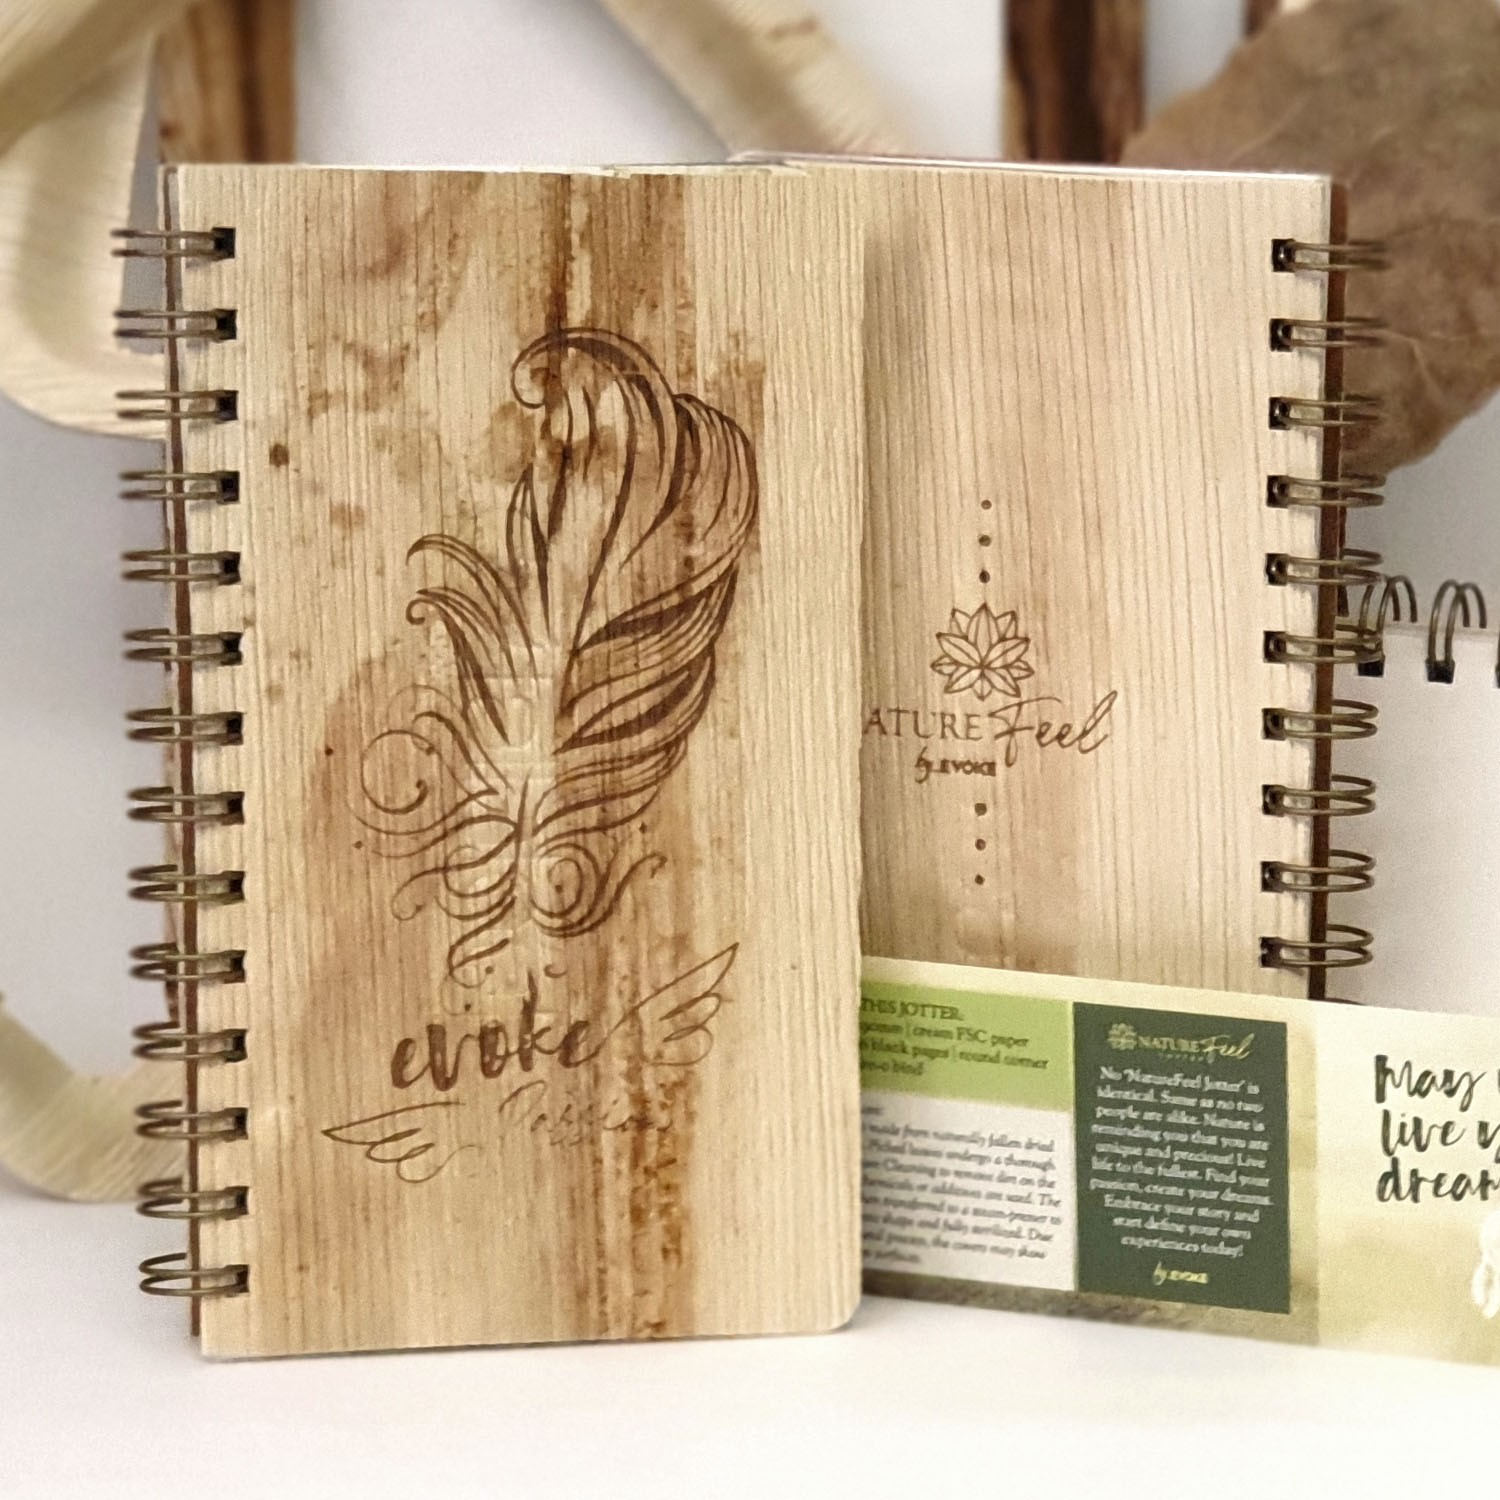 NatureFeel Jotter - Passion